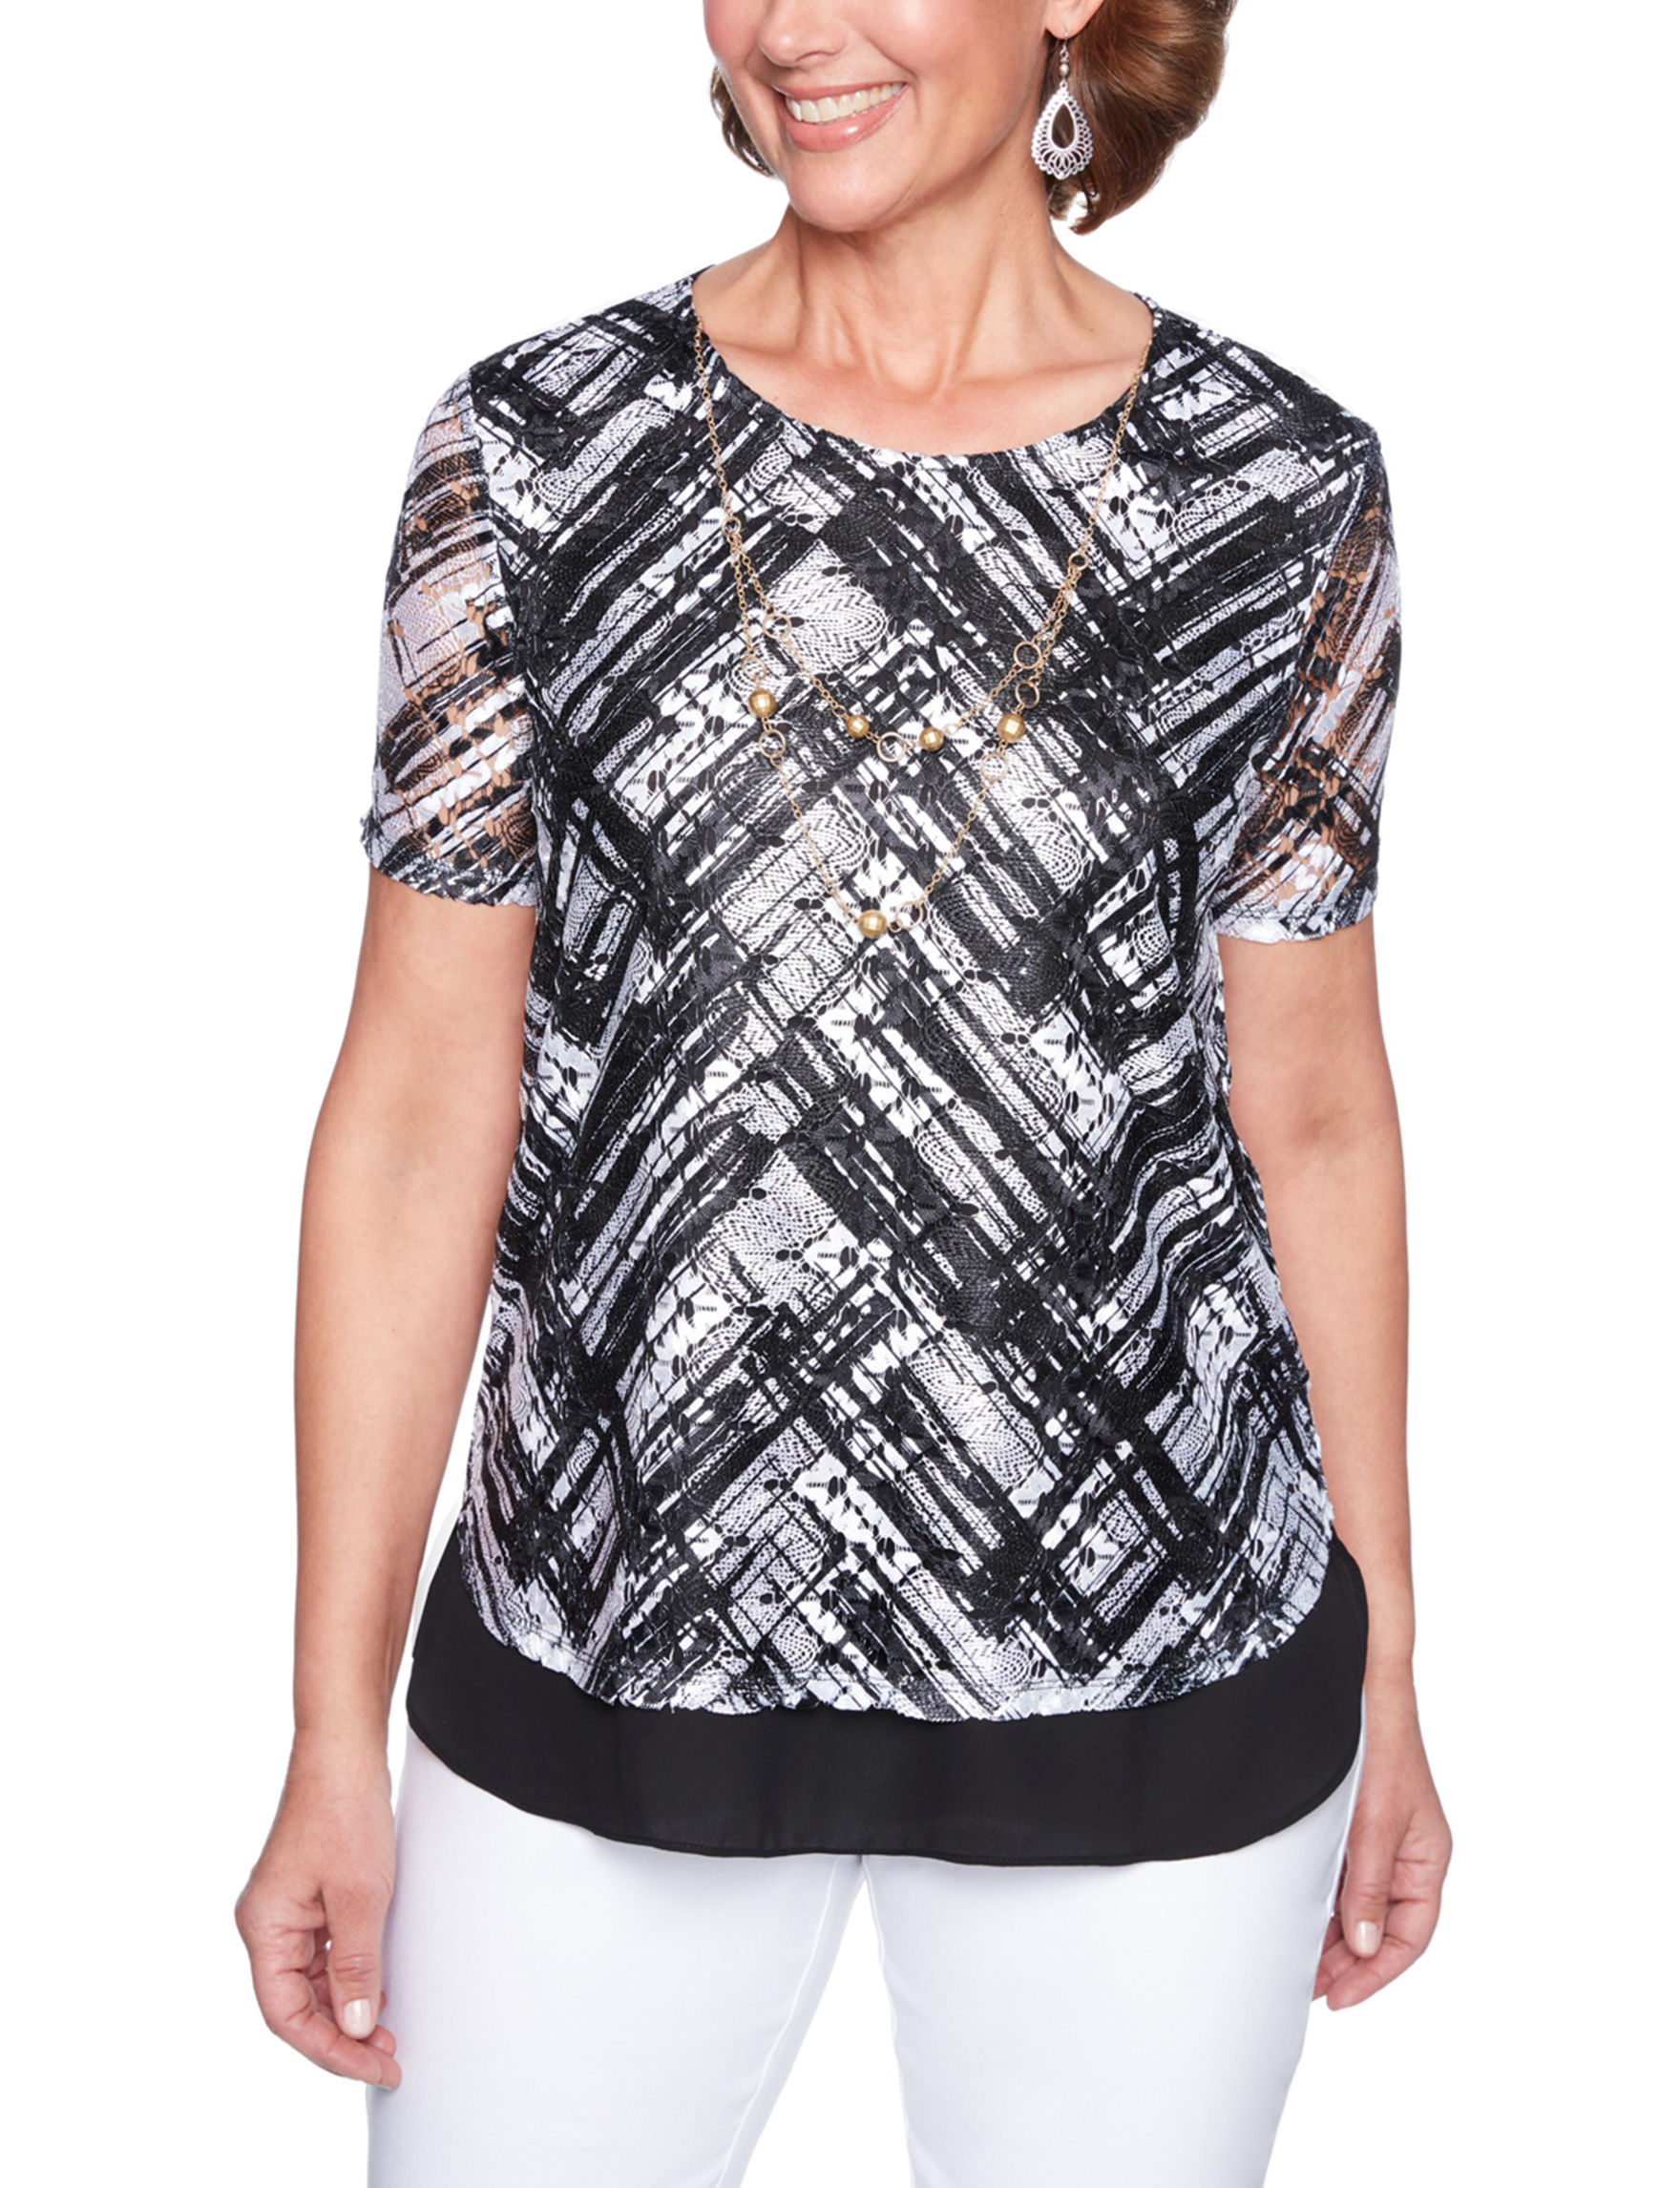 Alfred Dunner Black / White Shirts & Blouses